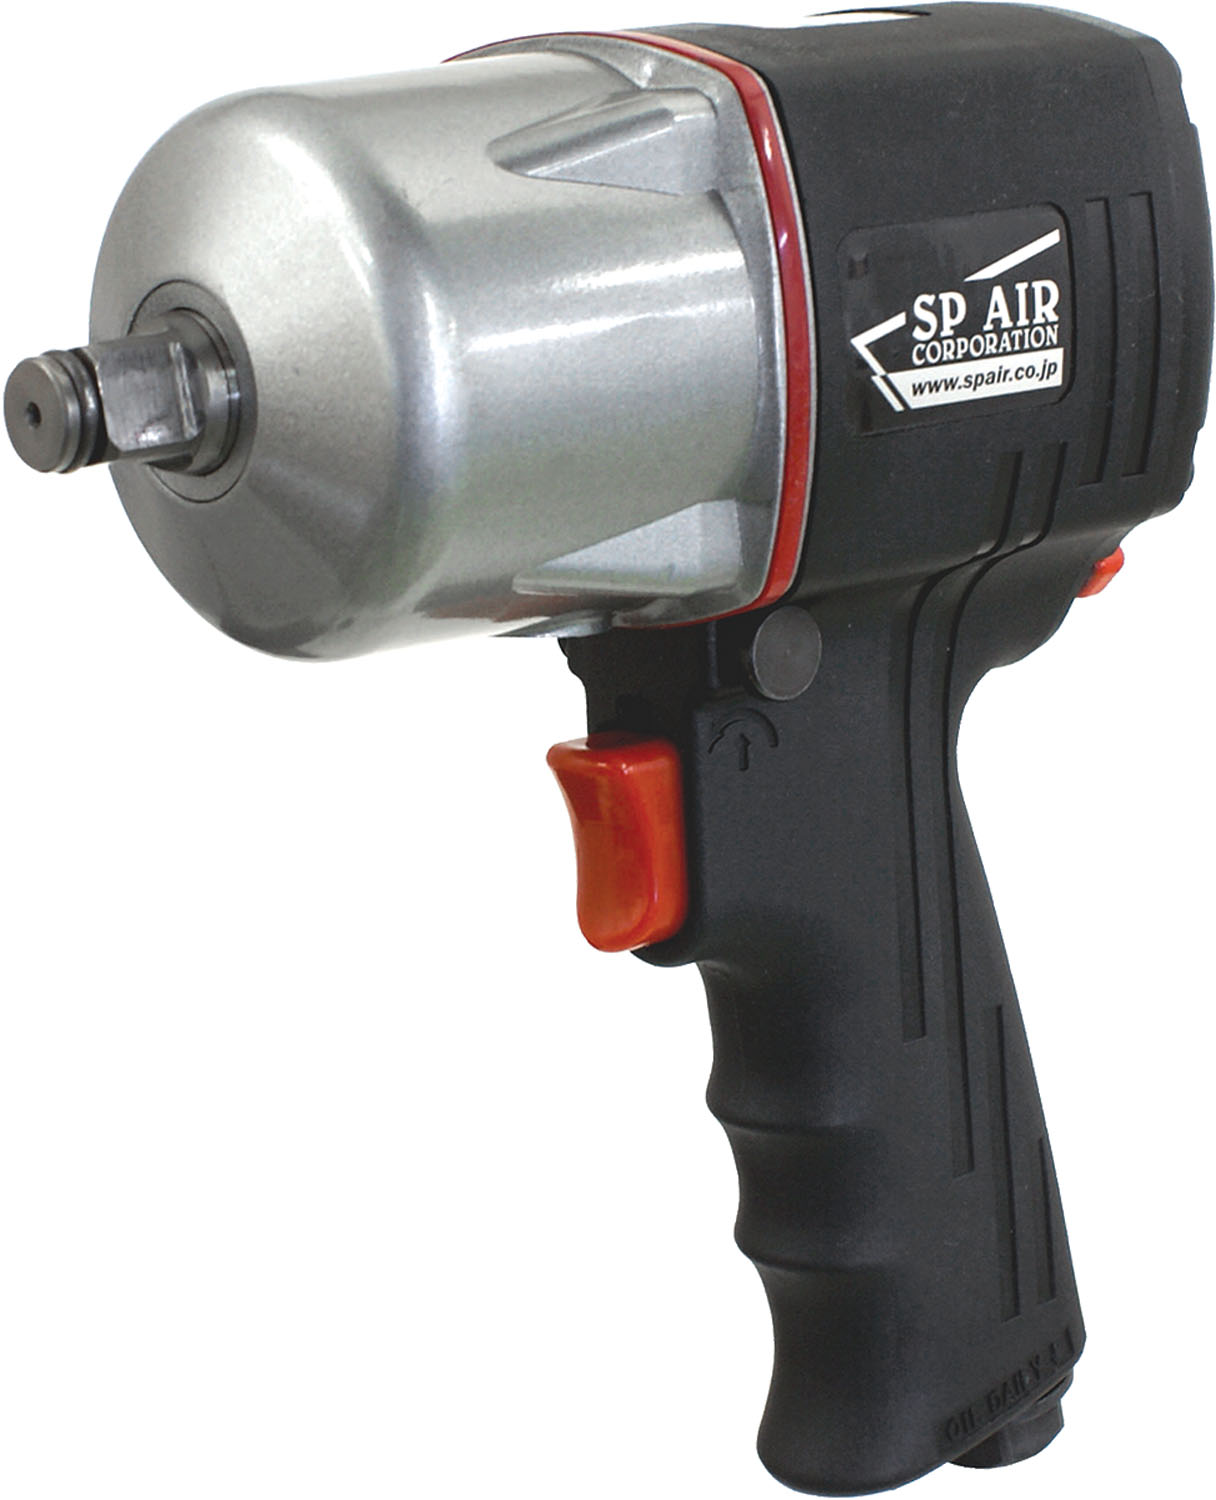 """SP Air Corporation 1/2"""" Composite Impact Wrench"""